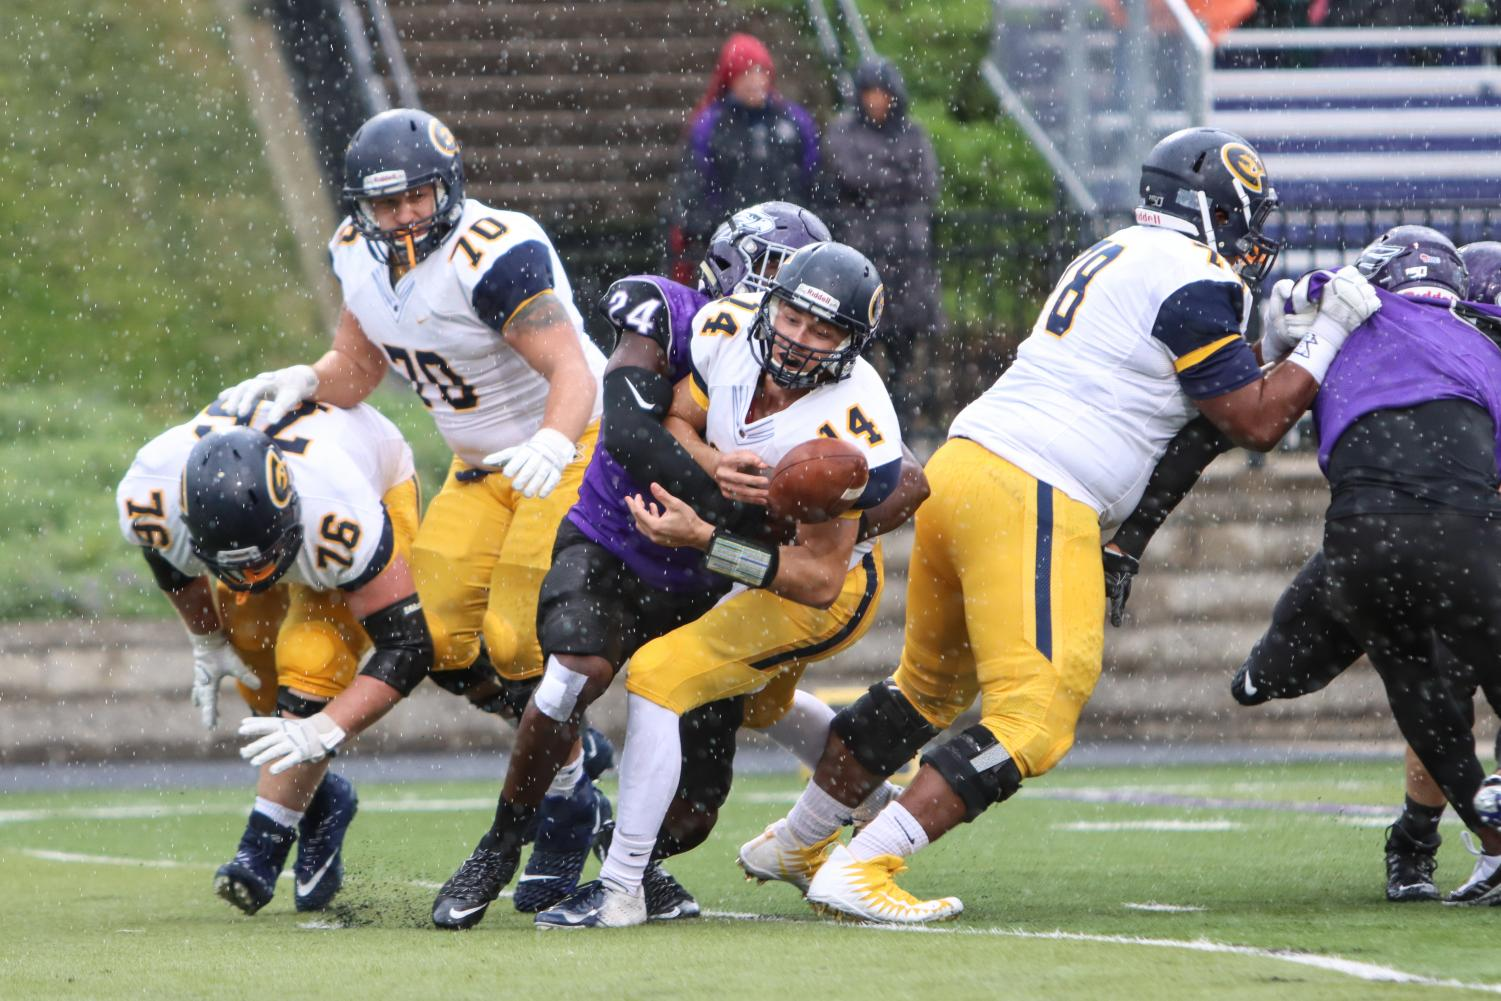 Senior defensive lineman Jordan Brand forces Eau Claire's quarterback Jonathan Malueg to fumble the ball just three plays into the game Saturday at Perkins Stadium. Brand finished the game with two sacks and four tackles.